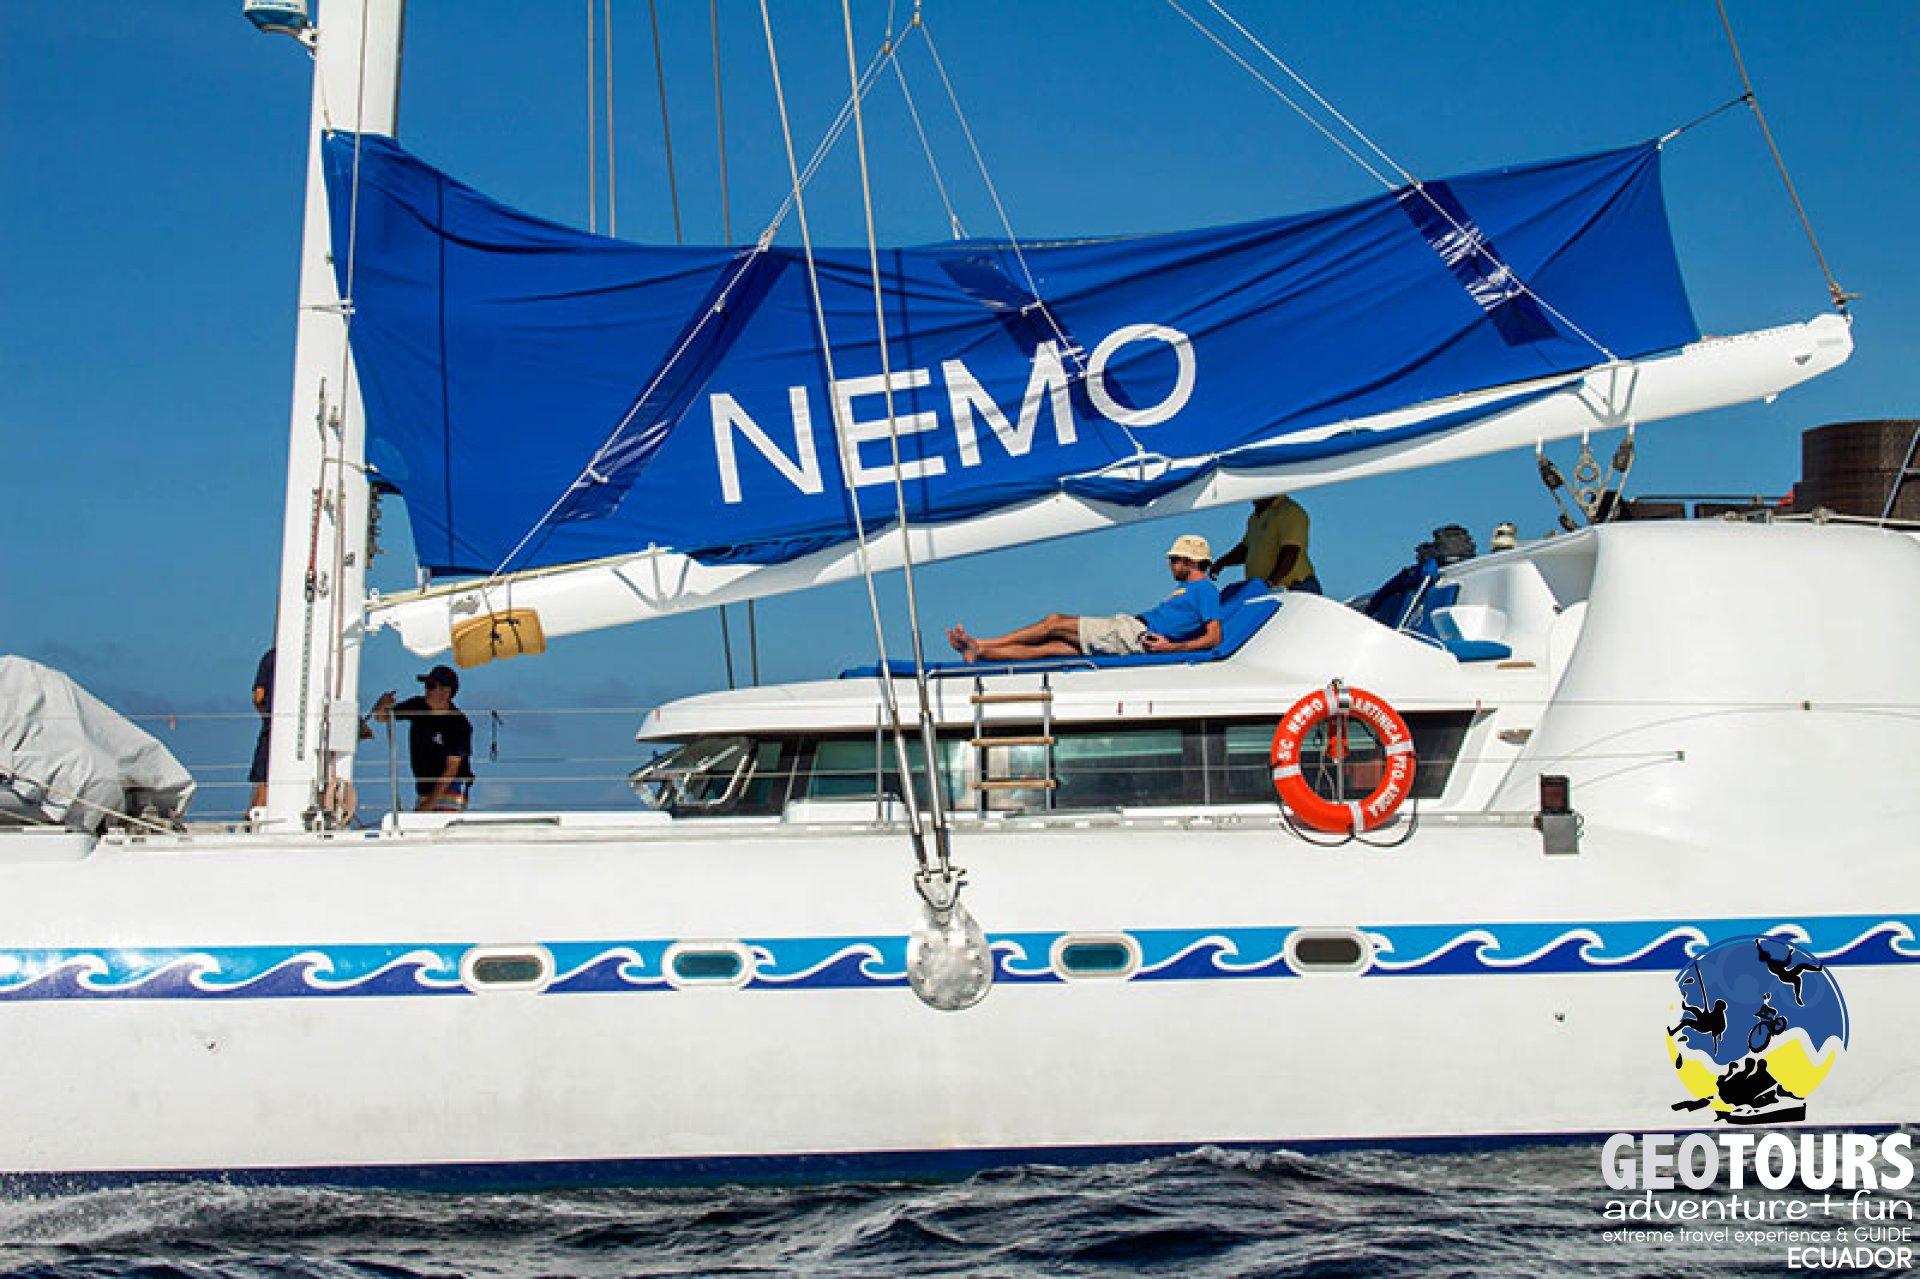 Nemo Yacht - Galapagos Islands